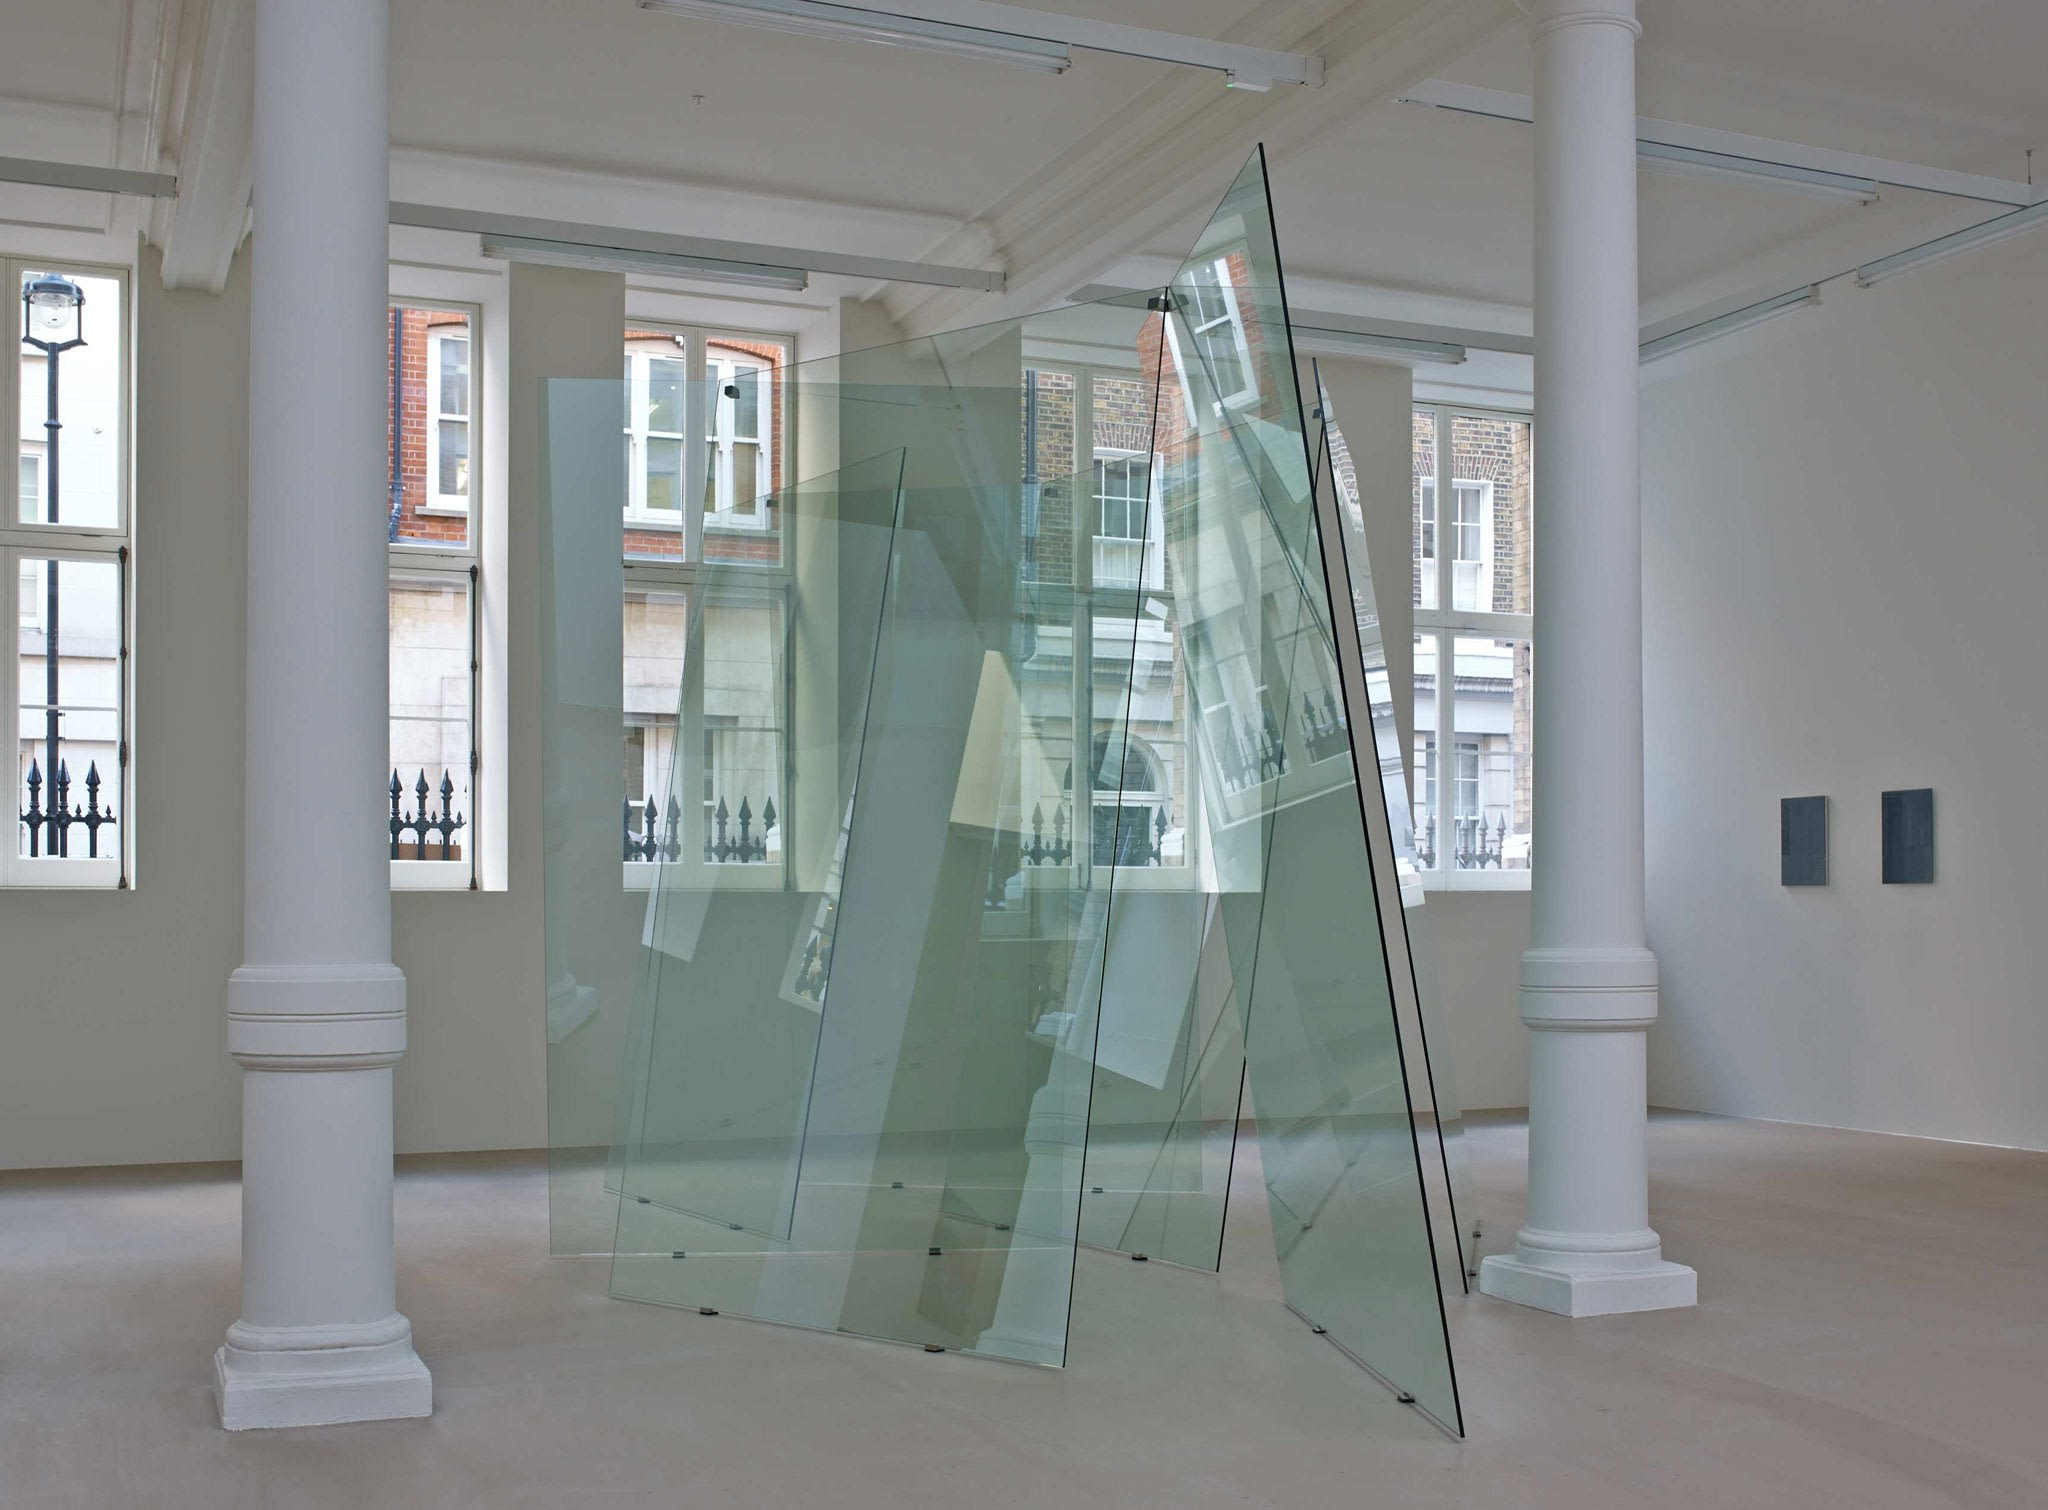 In a large white space with columns and many windows, several glass planes lean on each other unevenly, making a large sculpture.